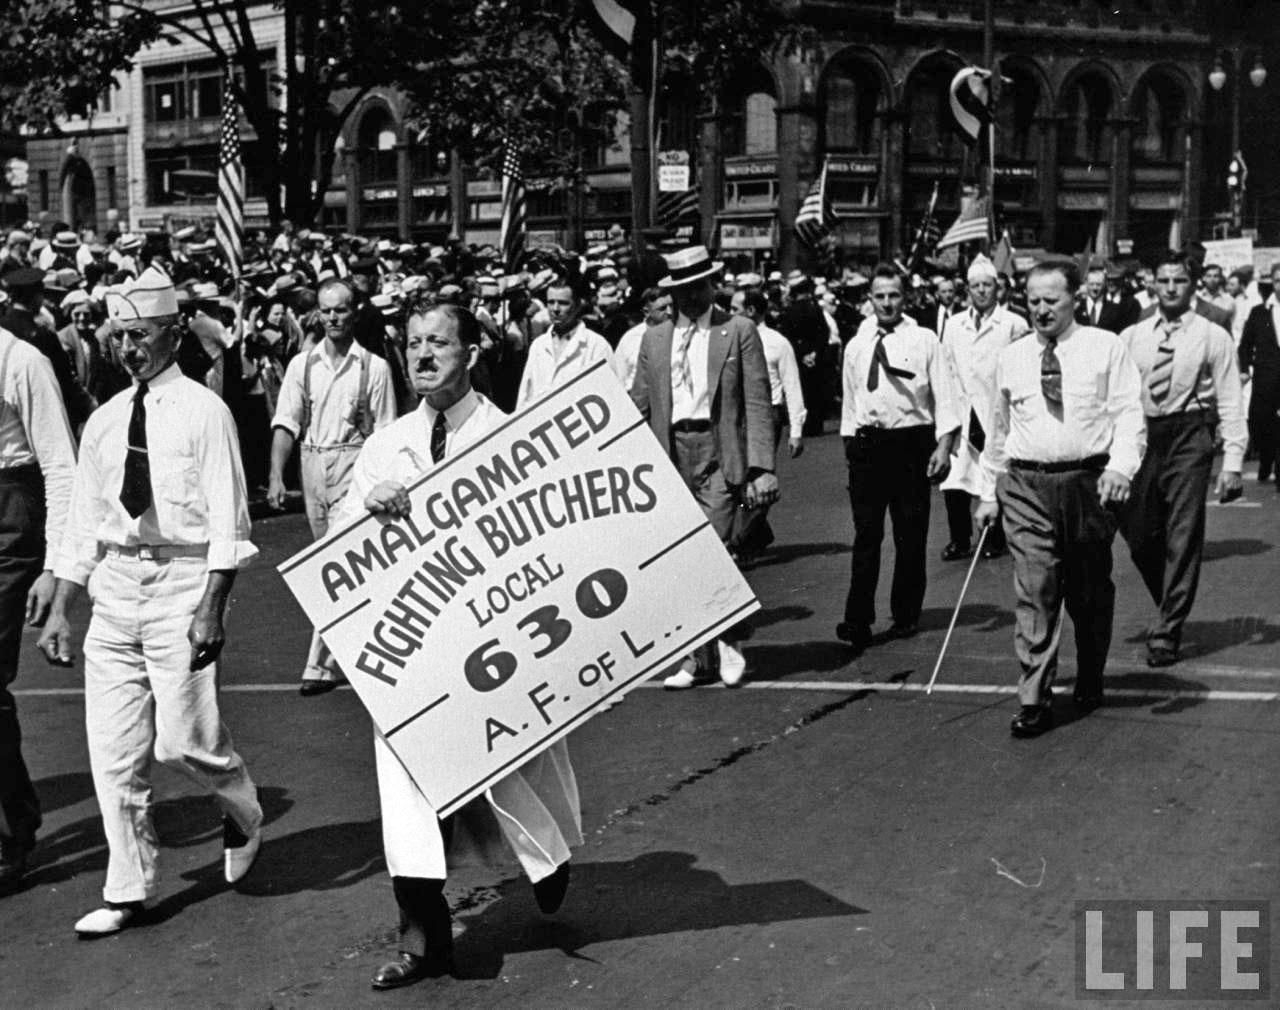 Units of the American Federation of Labor marching in the Labor Day Parade.